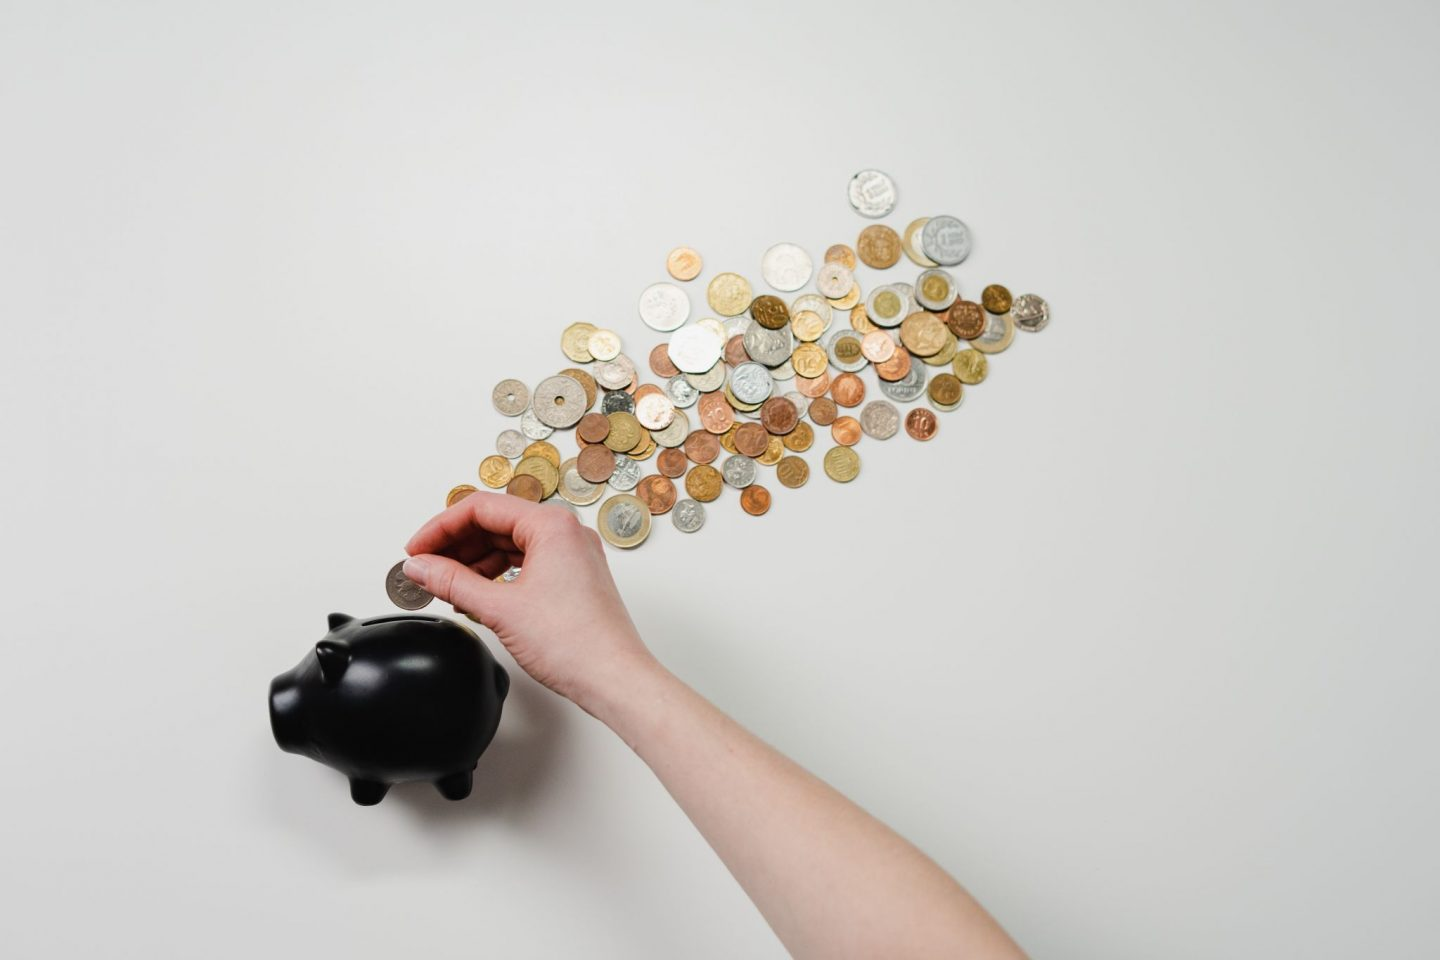 MANAGING YOUR FINANCES WHILE YOU'RE OUT OF WORK